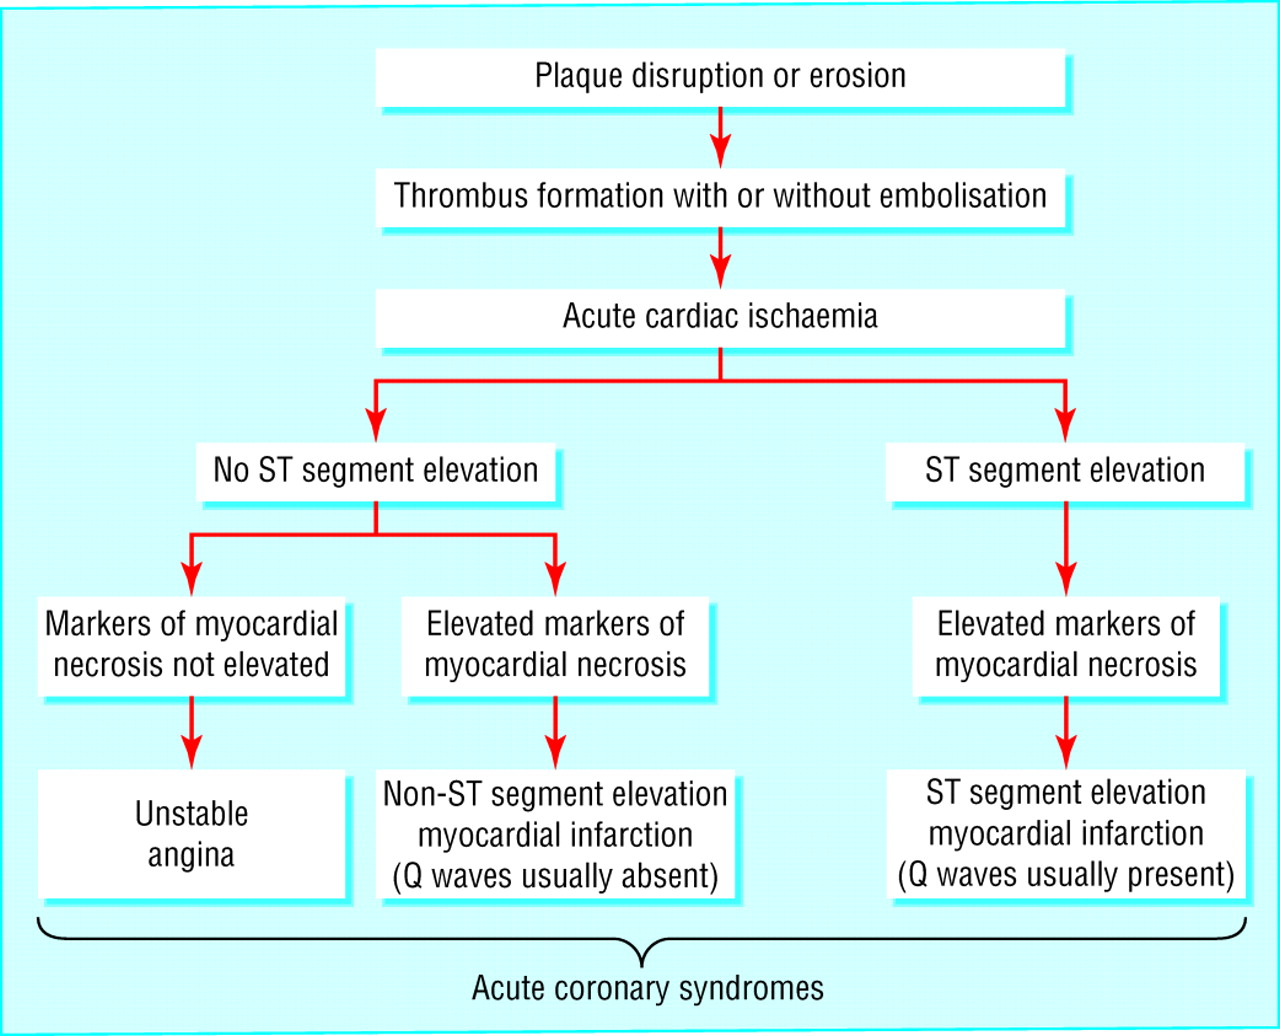 cardiac arteries diagram venn problems and solutions acute coronary syndrome: unstable angina non-st segment elevation myocardial infarction ...